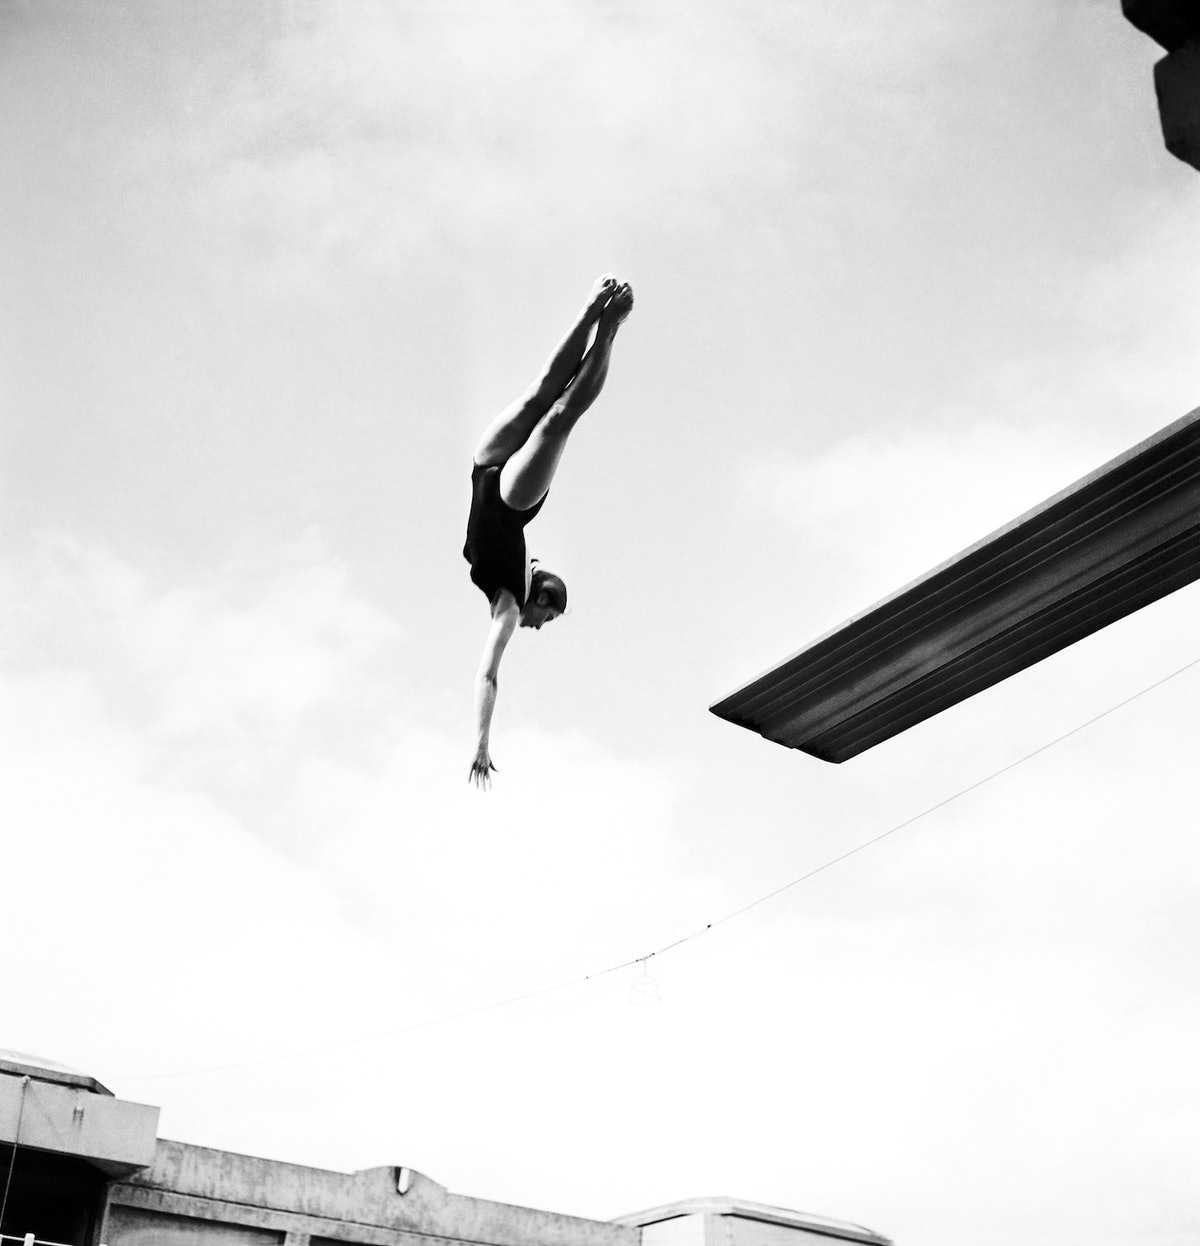 Female Diving Contest At The Swimming Pool Georges Vallerey In Paris